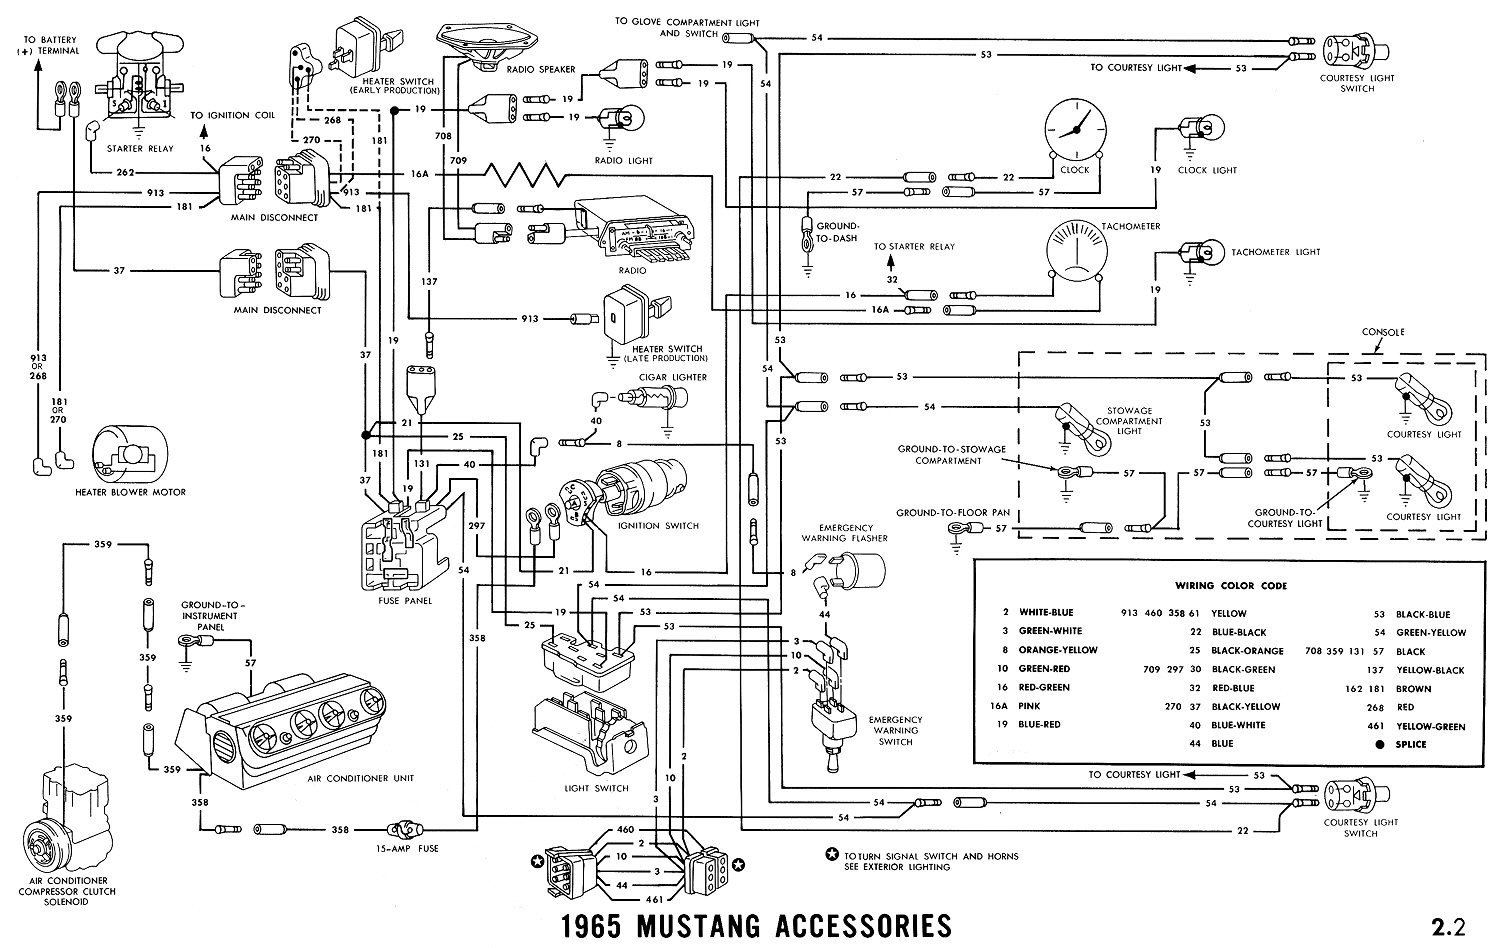 1965i 1965 mustang wiring diagrams average joe restoration Dodge Ram Wiring Diagram at mifinder.co